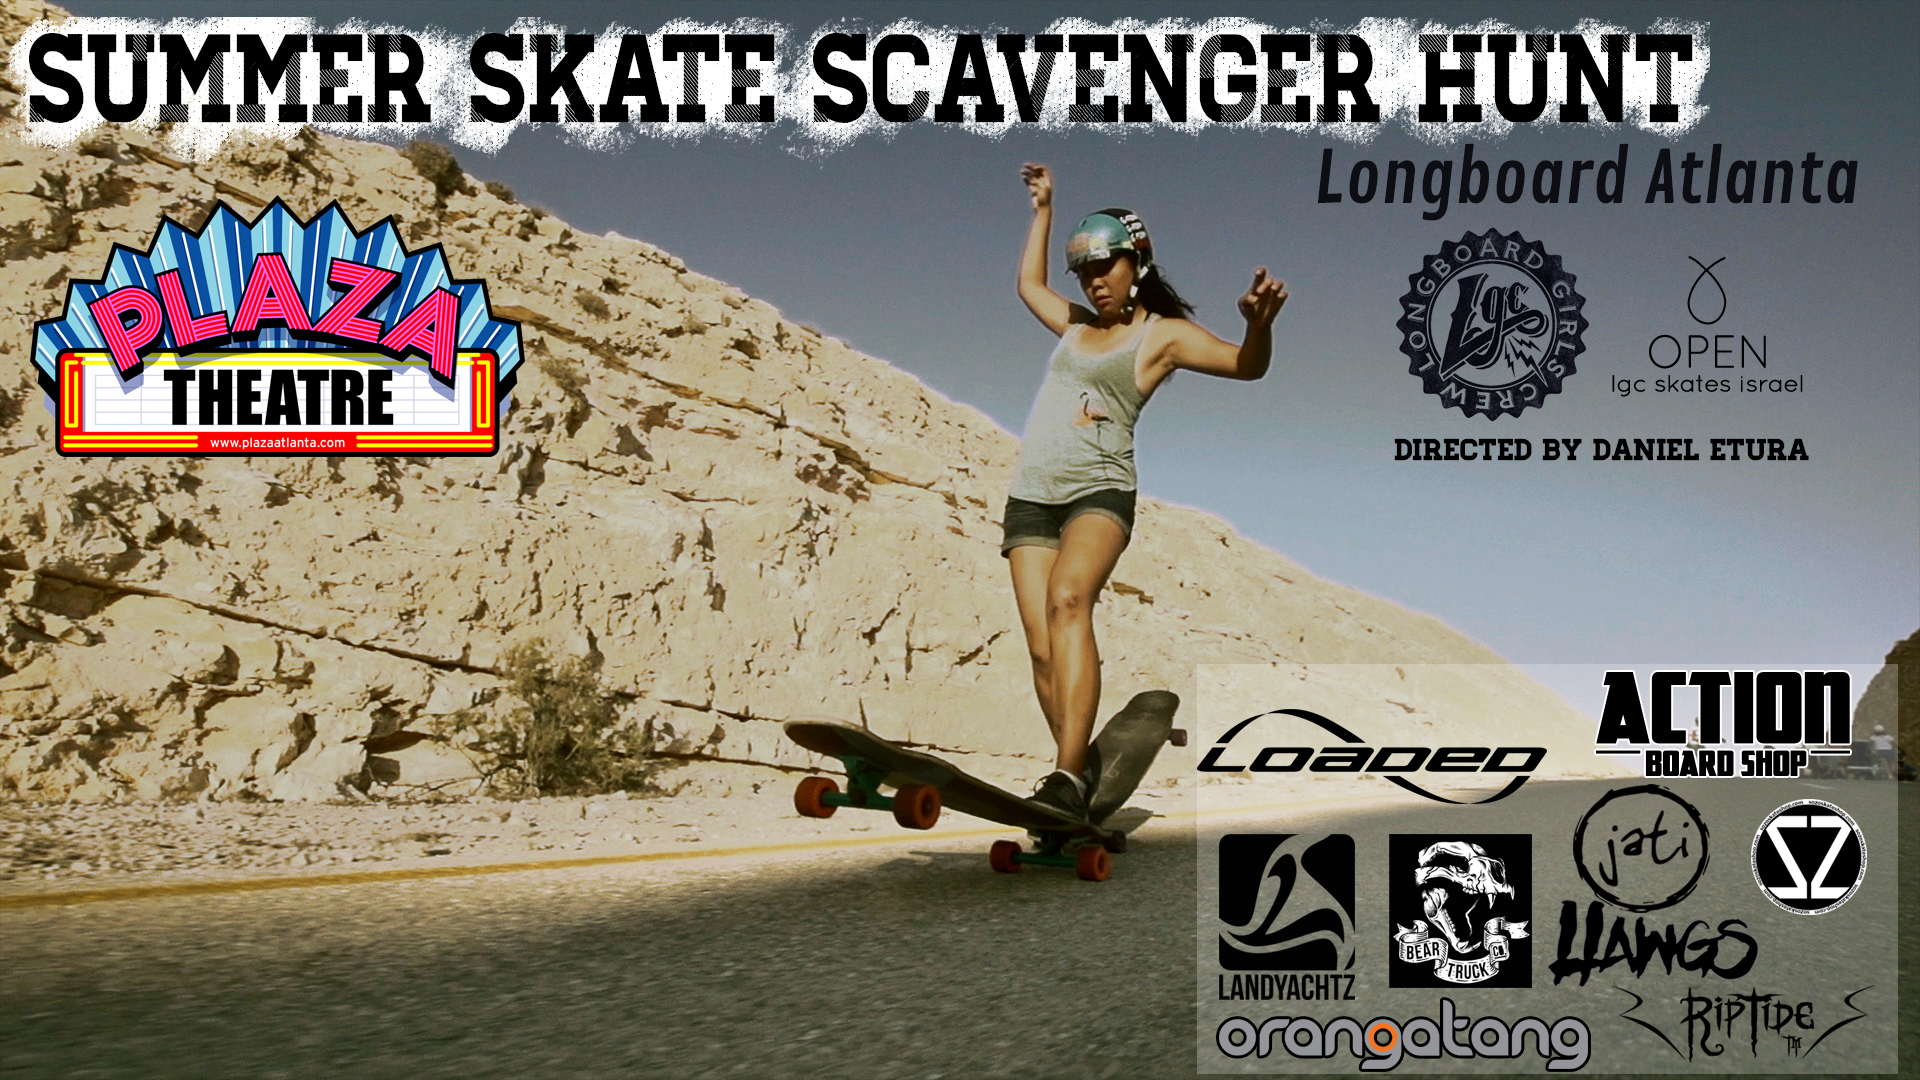 longboard girls crew, usa, georgia, atlanta, open, movie, lgc, israel, skate, longboarding, skateboarding, strong women, cool, rad women, movie premiere